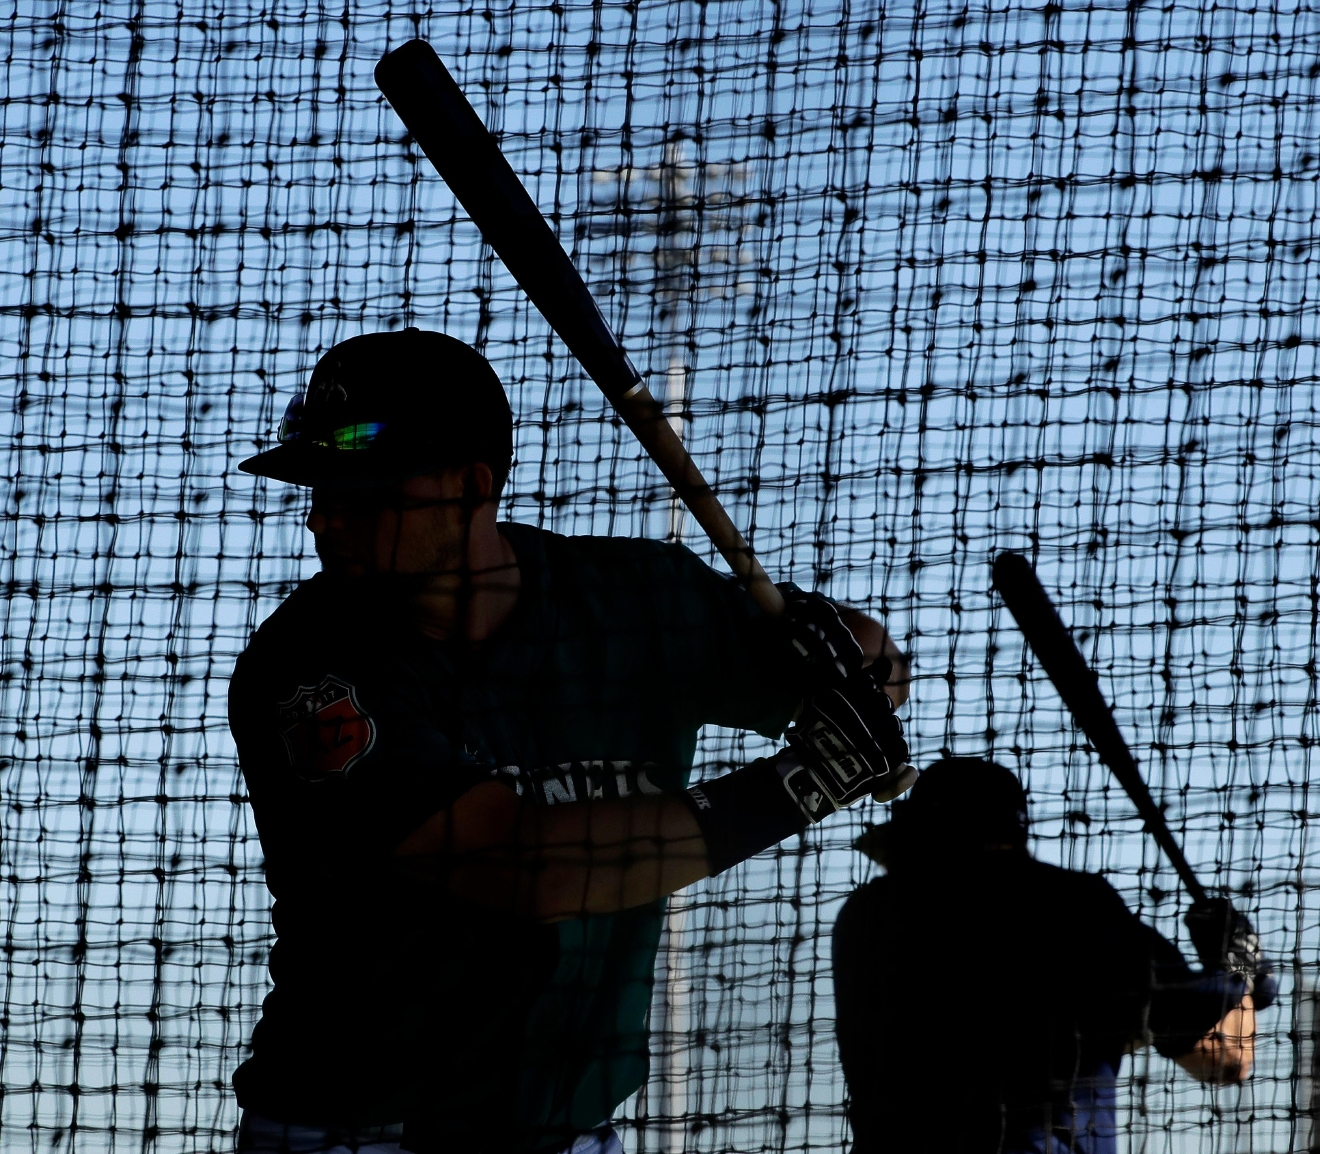 Players for the Seattle Mariners practice in a batting cage during baseball spring training Tuesday, Feb. 21, 2017, in Peoria, Ariz. (AP Photo/Charlie Riedel)